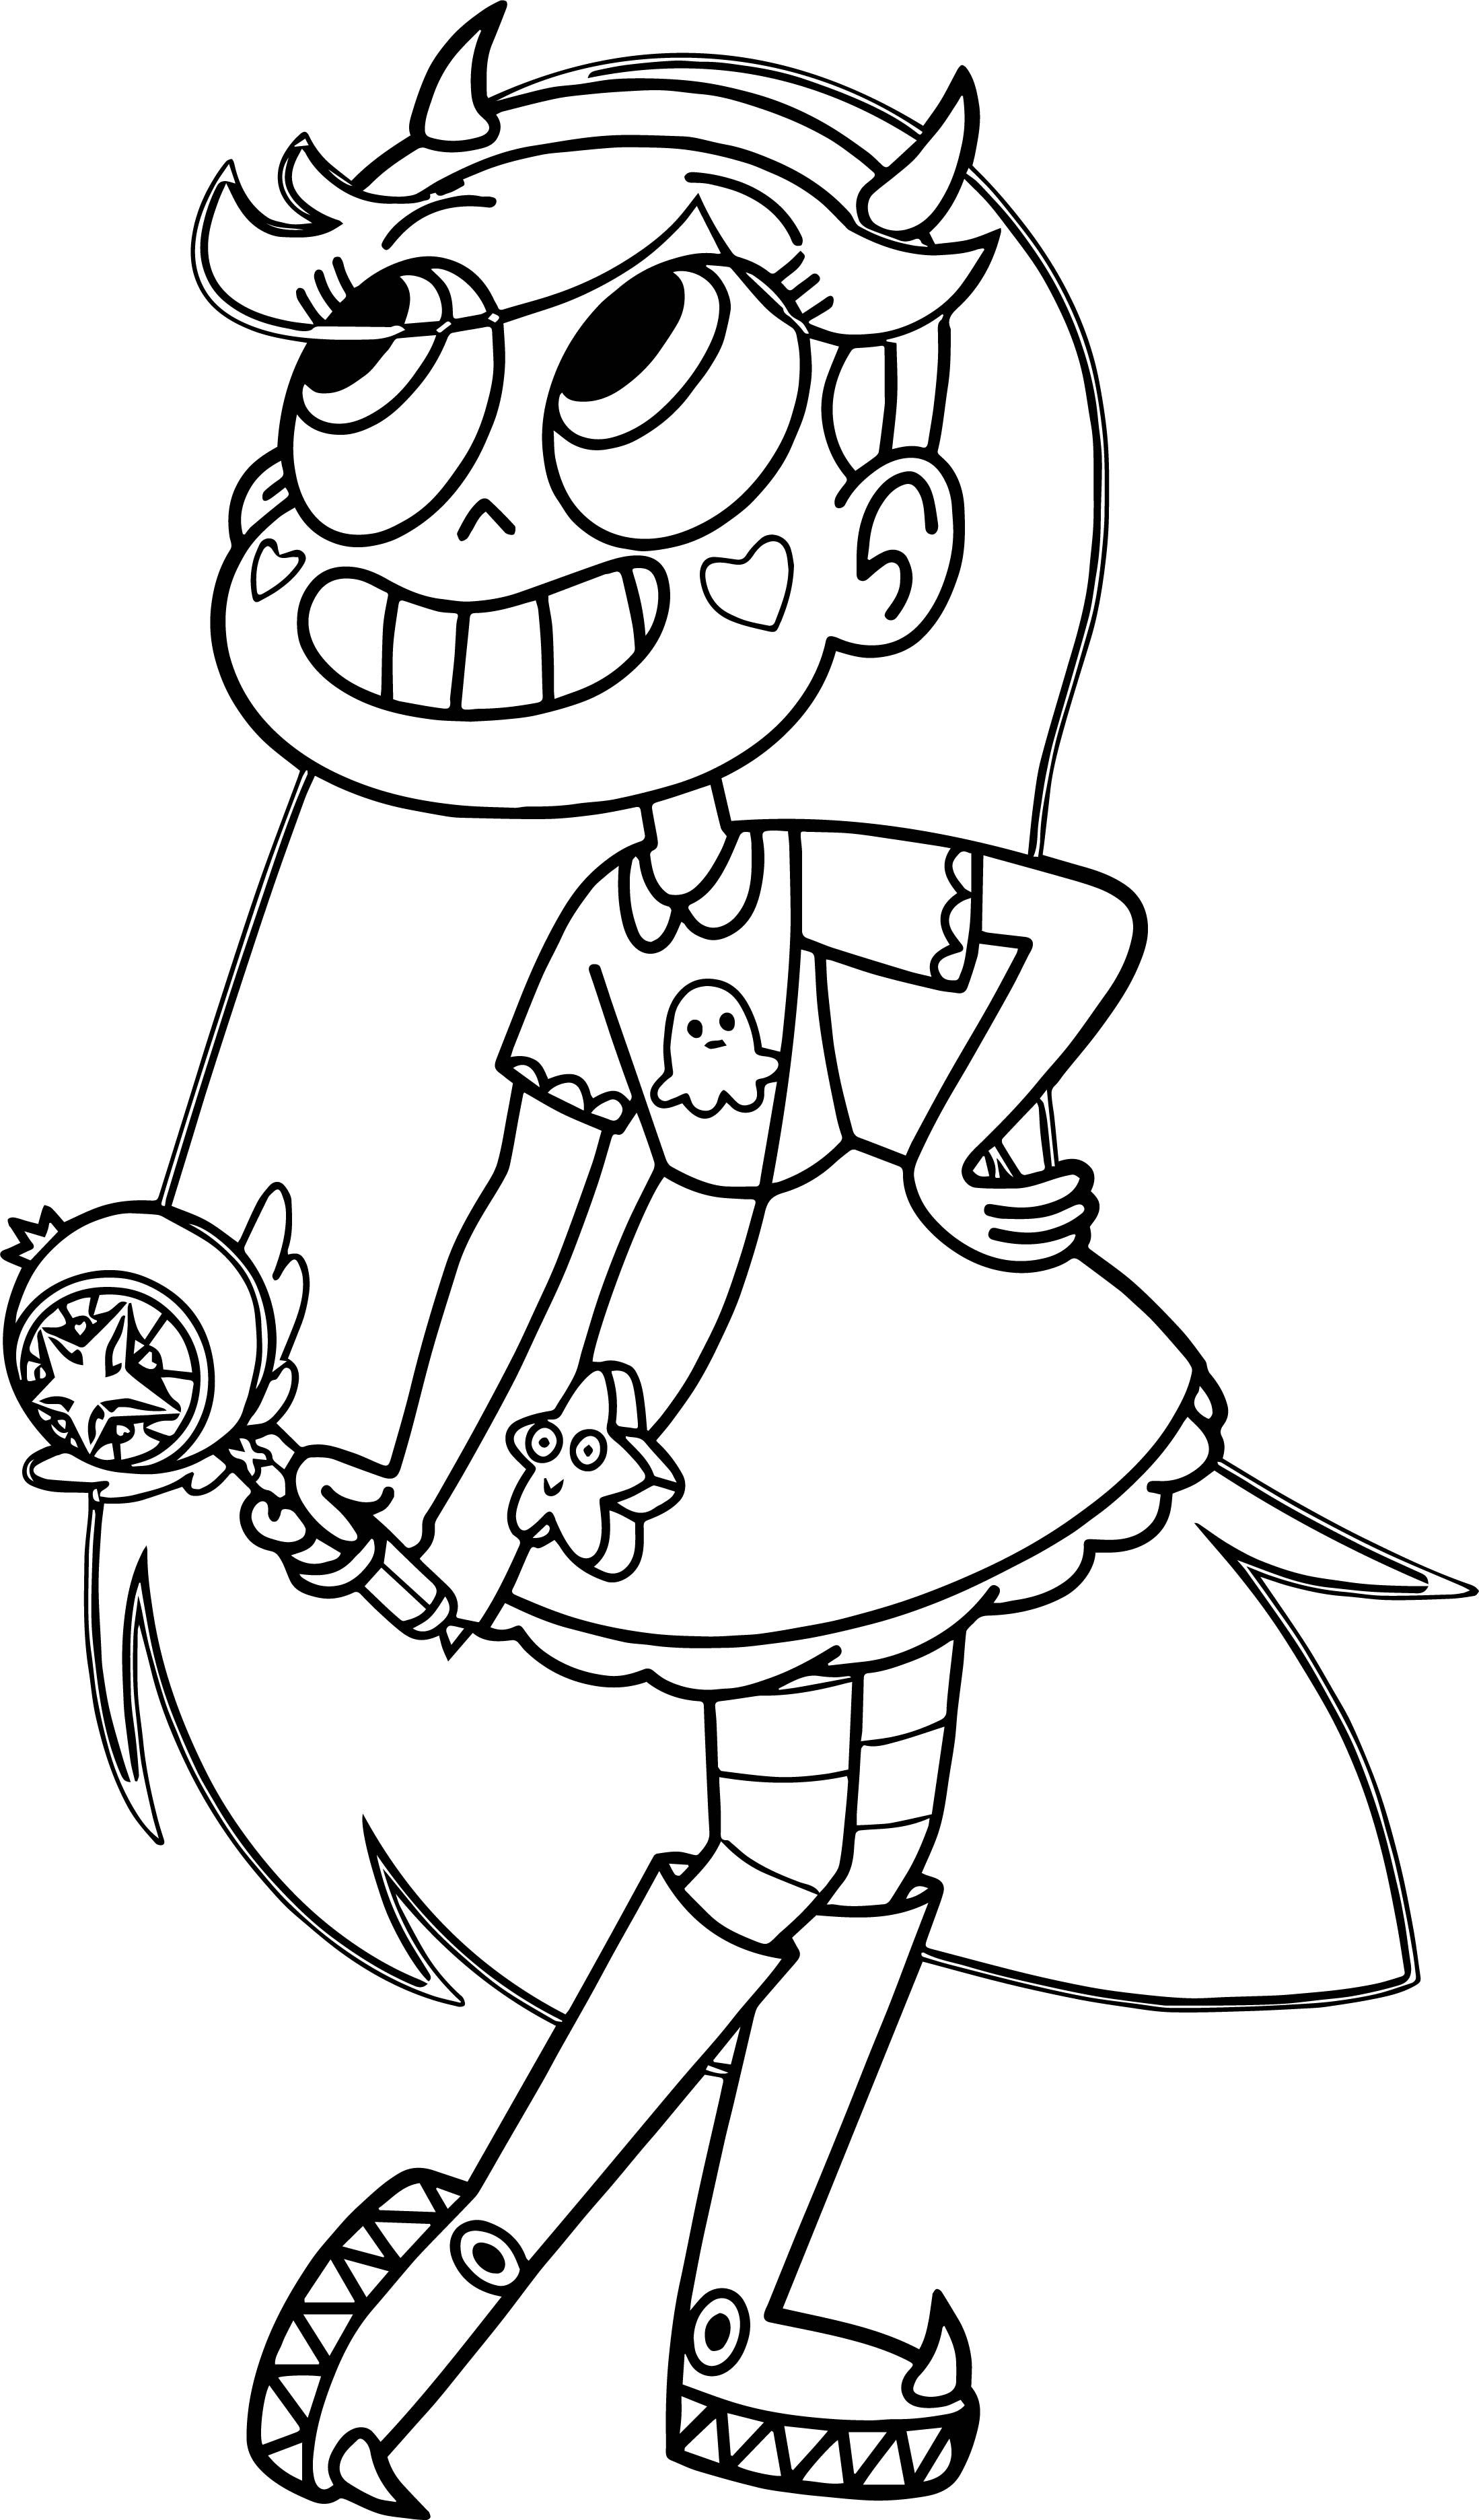 cool Star Vs The Forces Of Evil Butterfly Coloring Page | Desenhos ...